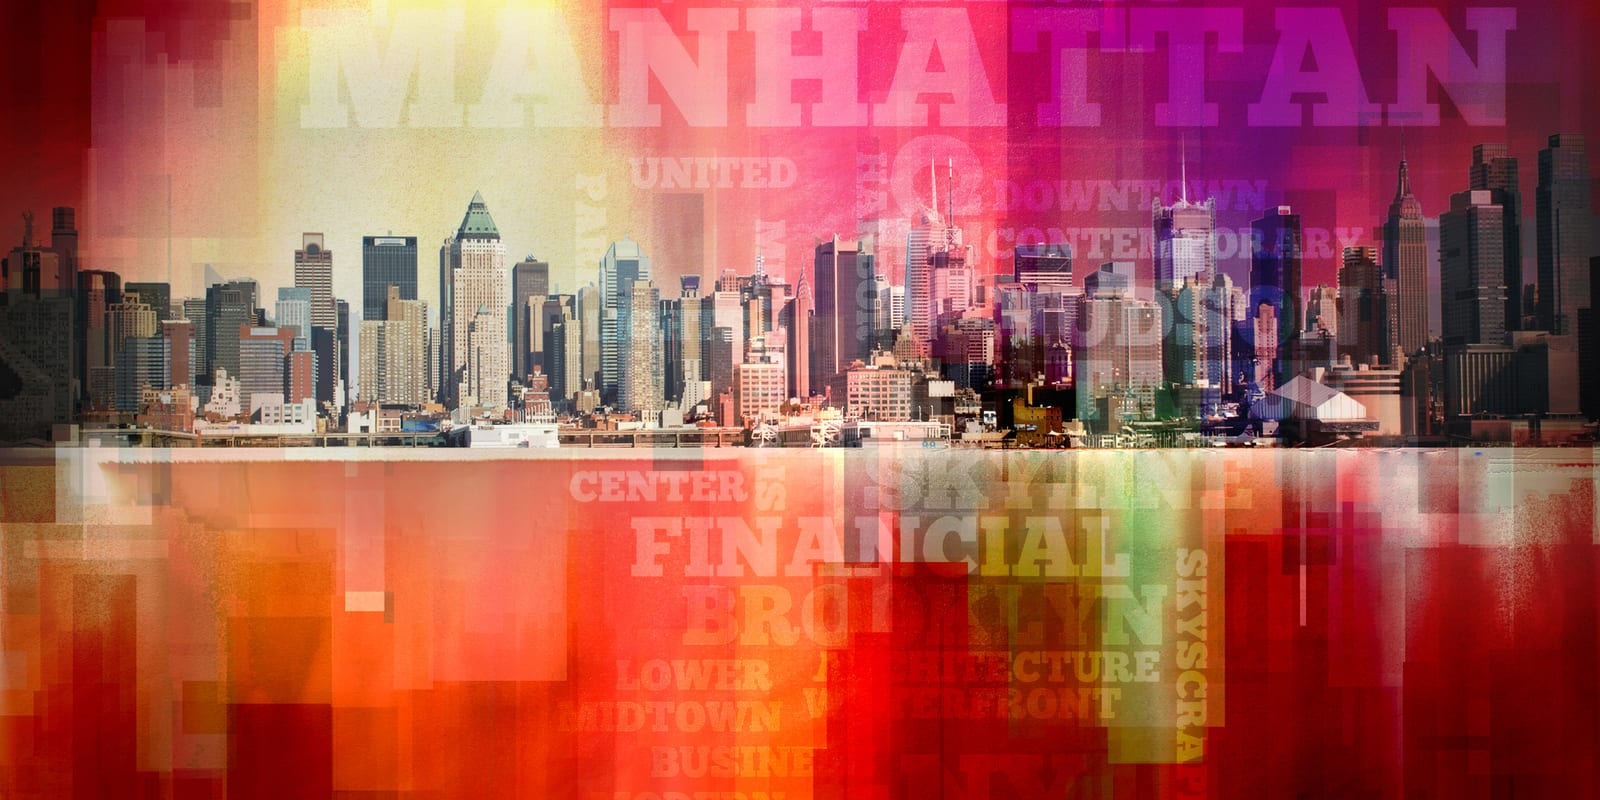 NoMad Manhattan, NY Private Investigator